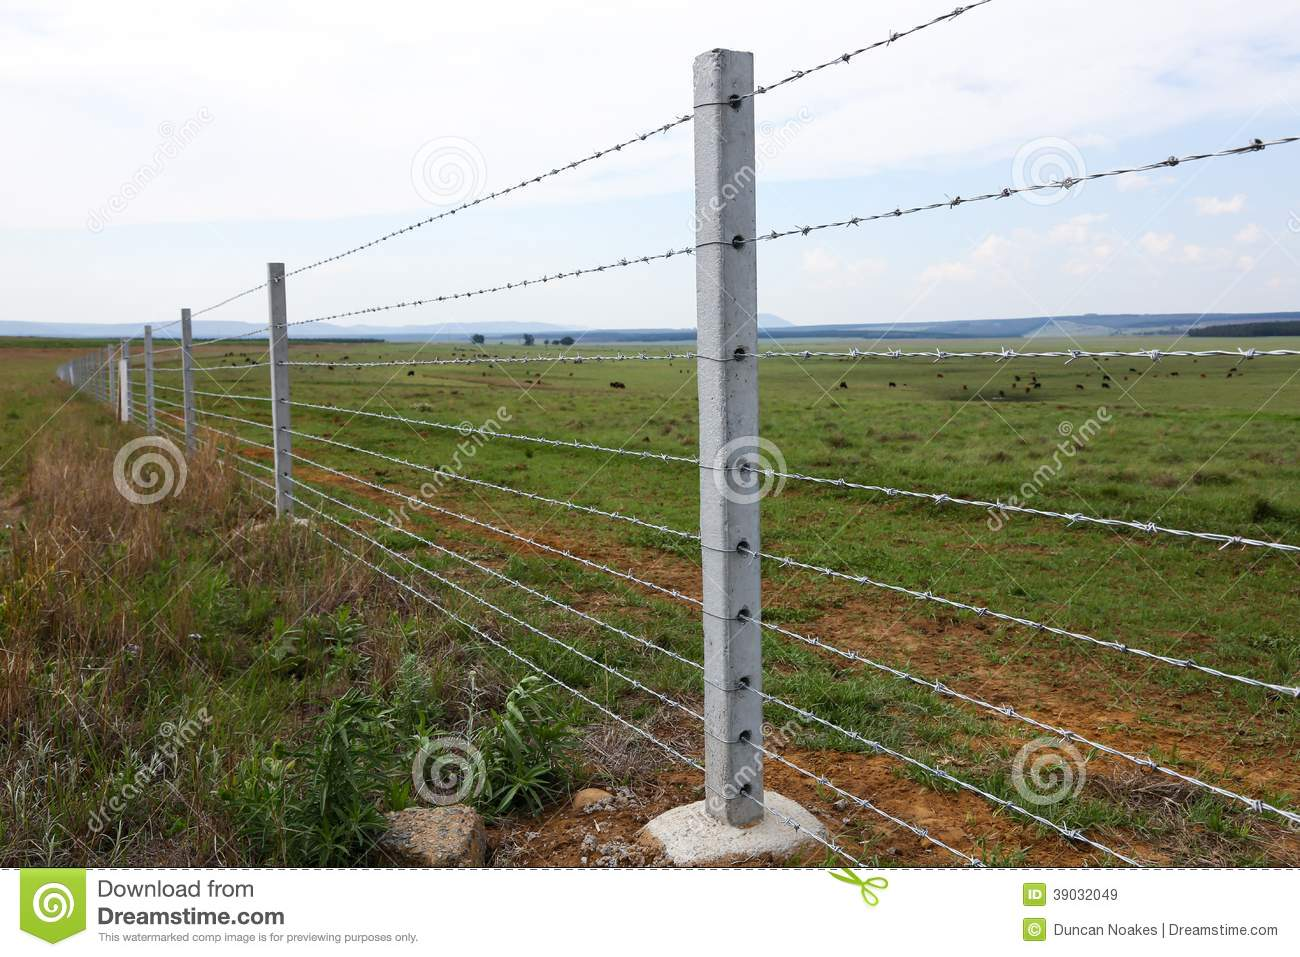 Farm fence with concrete fencing posts and barbed wire strands.